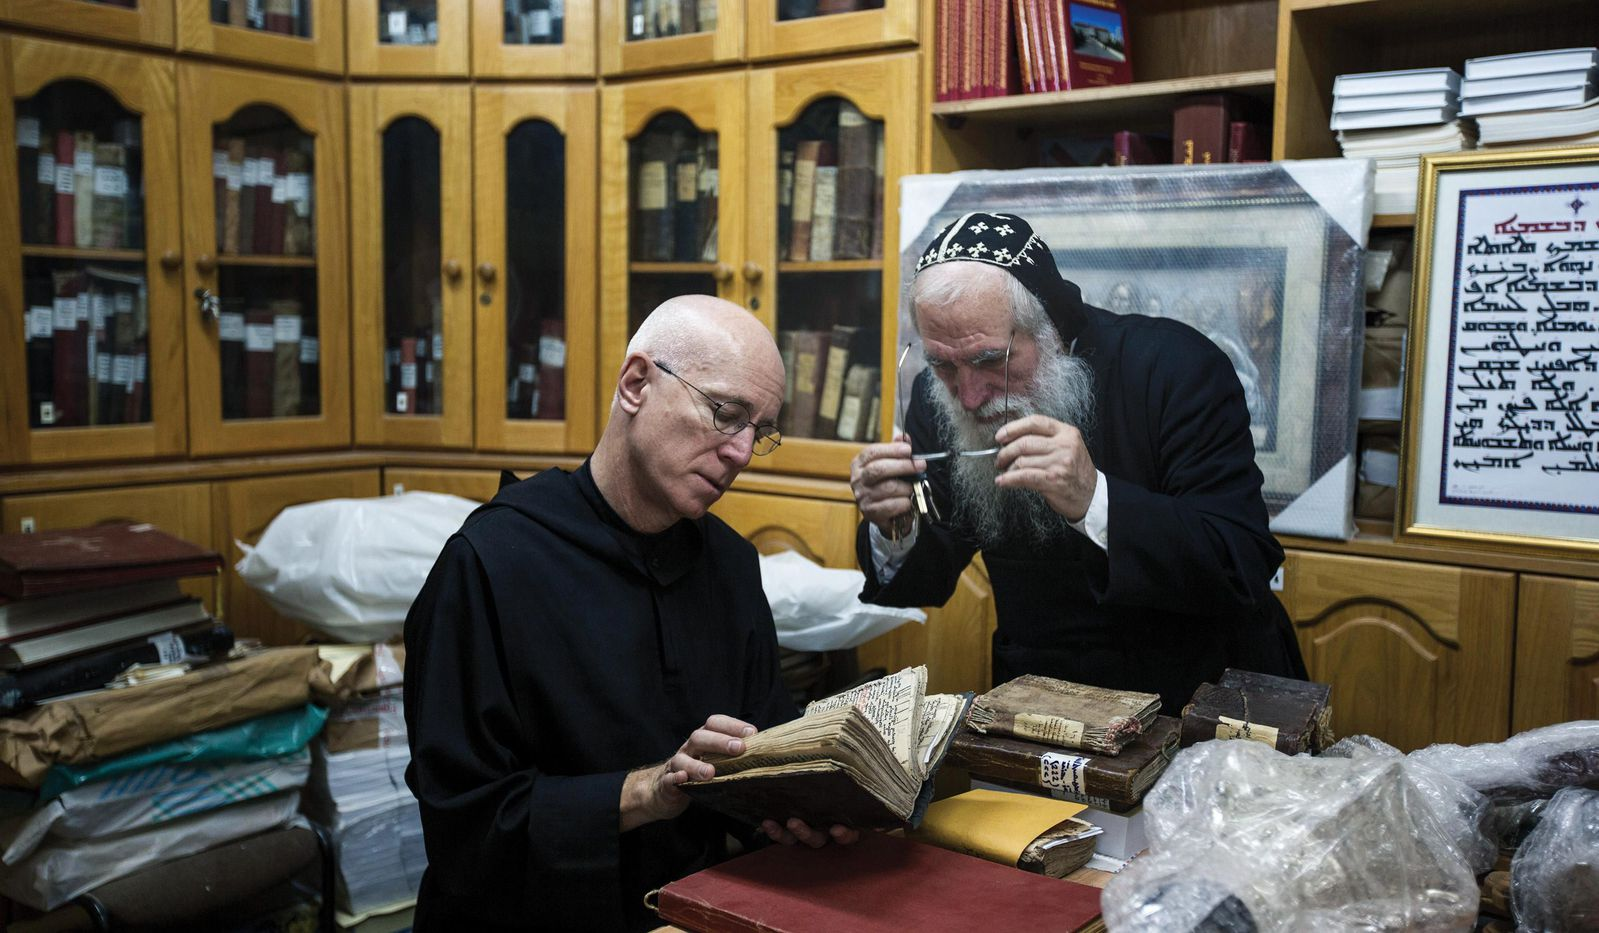 When Columba Stewart, a 63-year-old Benedictine monk based in Minnesota, arrived at the Kaiser Library, a government- affiliated archive in Kathmandu,